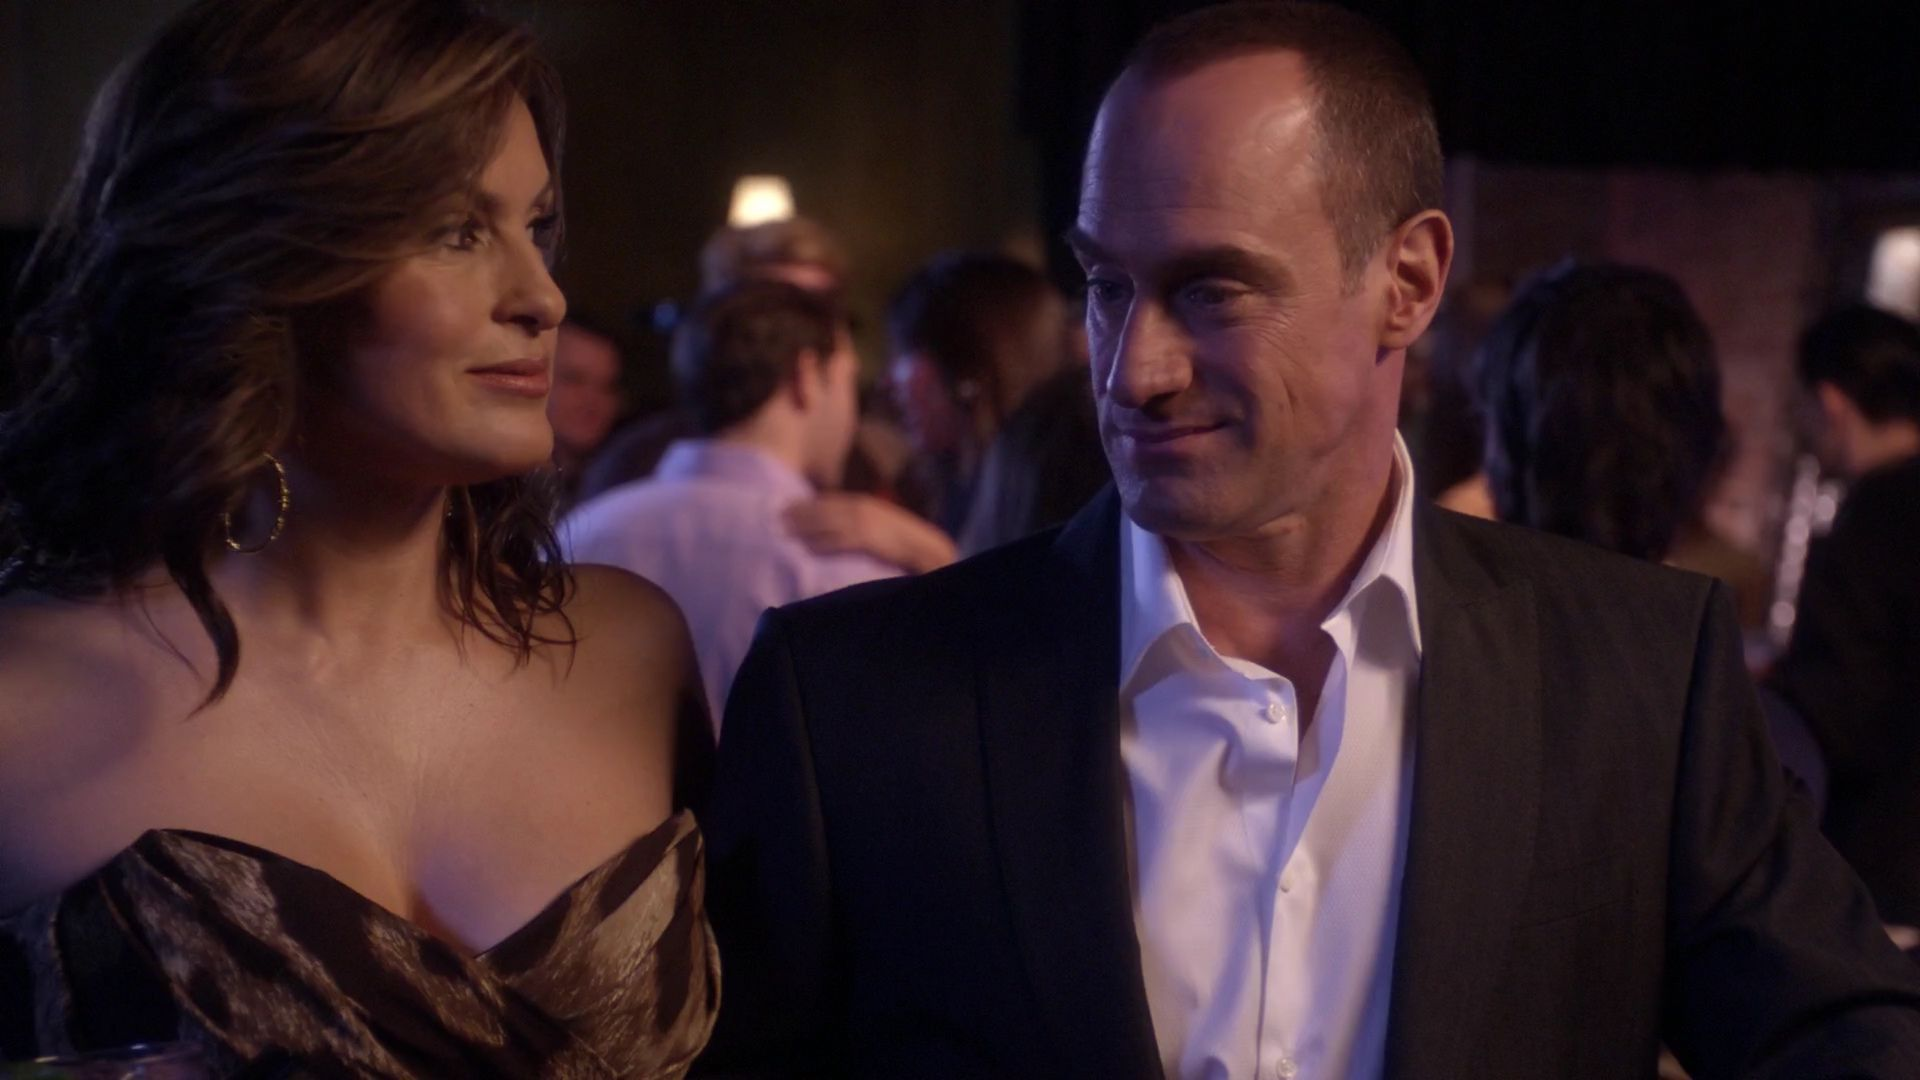 Olivia Benson & Elliot Stabler undercover as a married couple